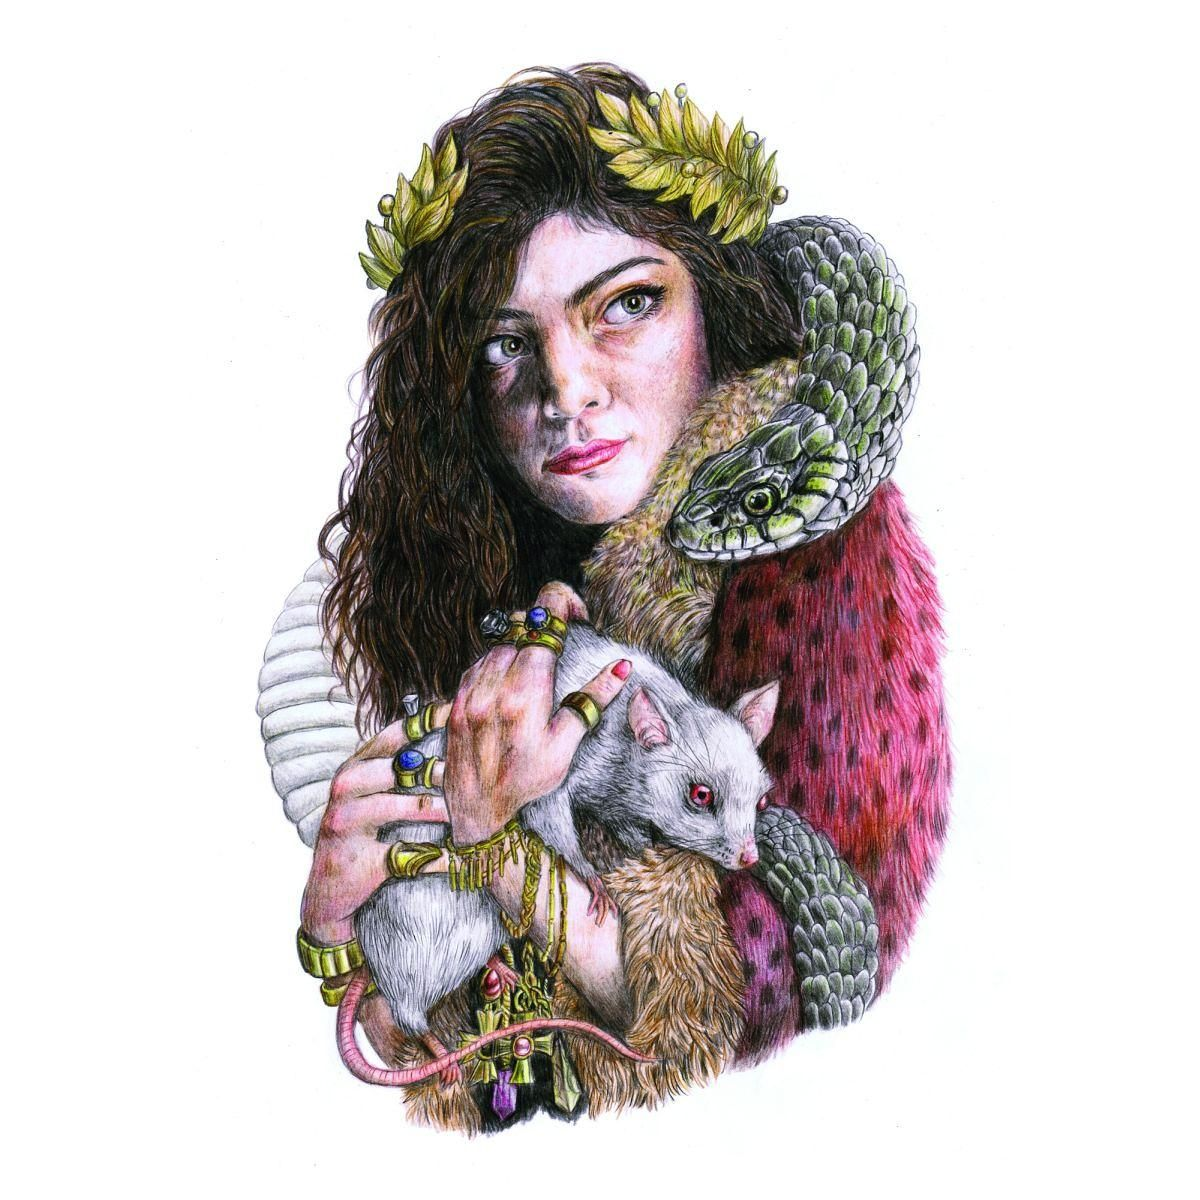 Single cover art lorde tennis court 072013 music is in the single cover art lorde tennis court 072013 hexwebz Choice Image